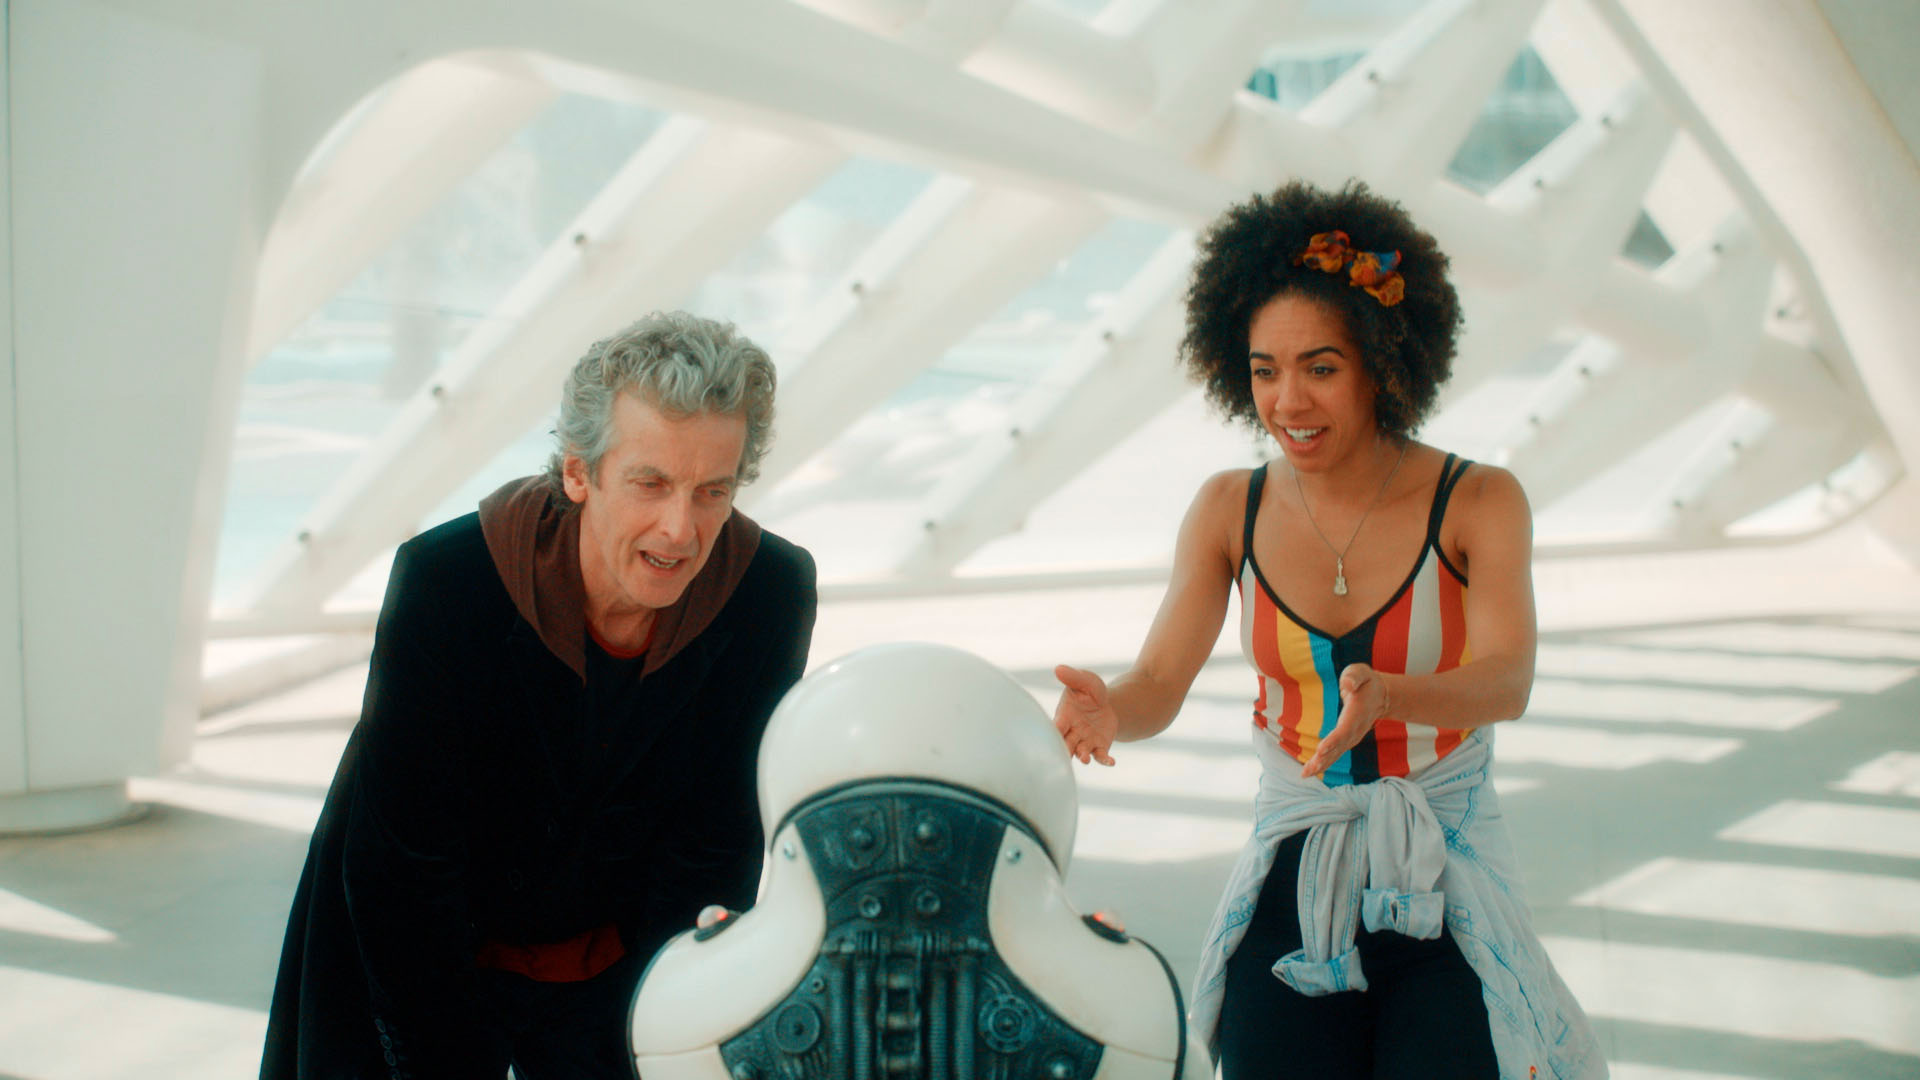 Doctor Who series 10 episode 2: When is it on and what is it about?